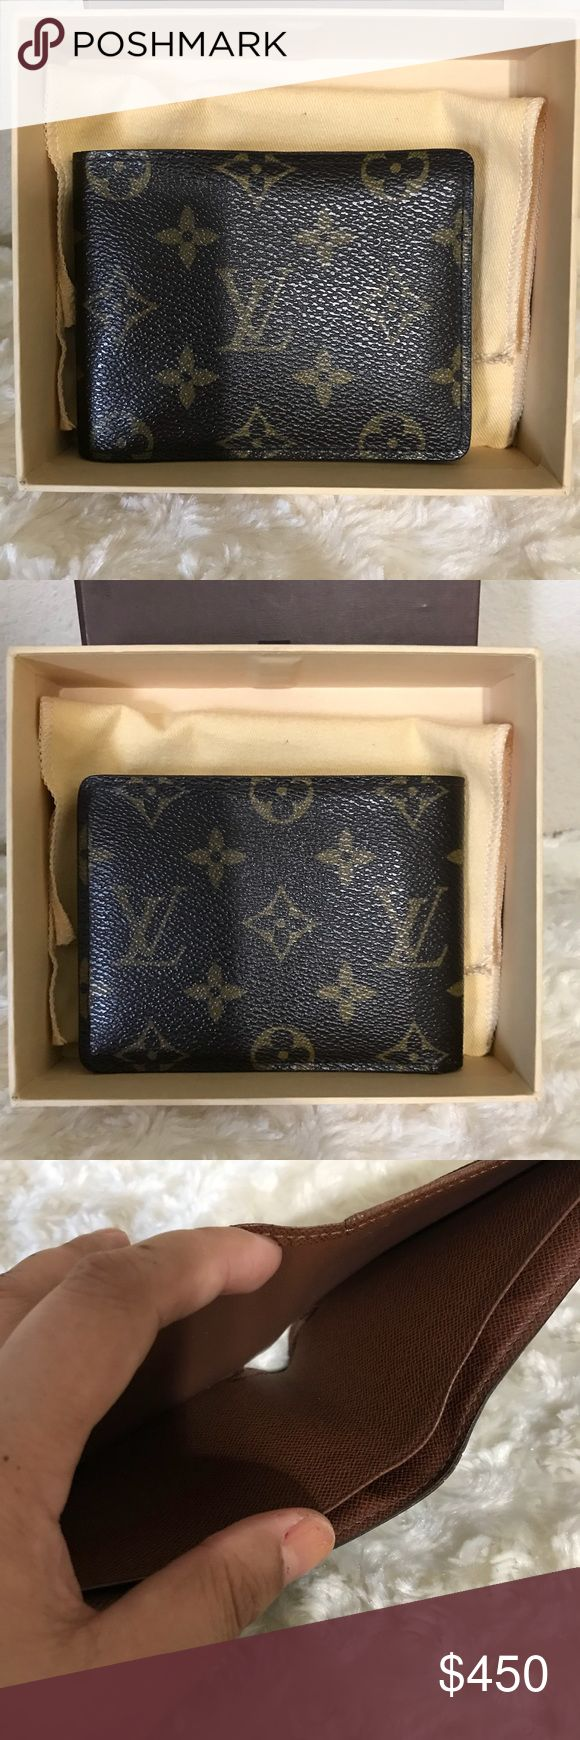 Louis vuitton mens wallet. Pre-owned 100 % Louis vuitton mens wallet. In good condition. Has sign of normal usage. One side its curly  No rip or tear. No foul smell Has 5 cc slot  Has 2 bills compartment no coins pocket. Date code RA0054 made in france. Please check all the pictures before purchasing. No ball offers no trade.❌❌❌ wallet. Louis Vuitton Bags Wallets